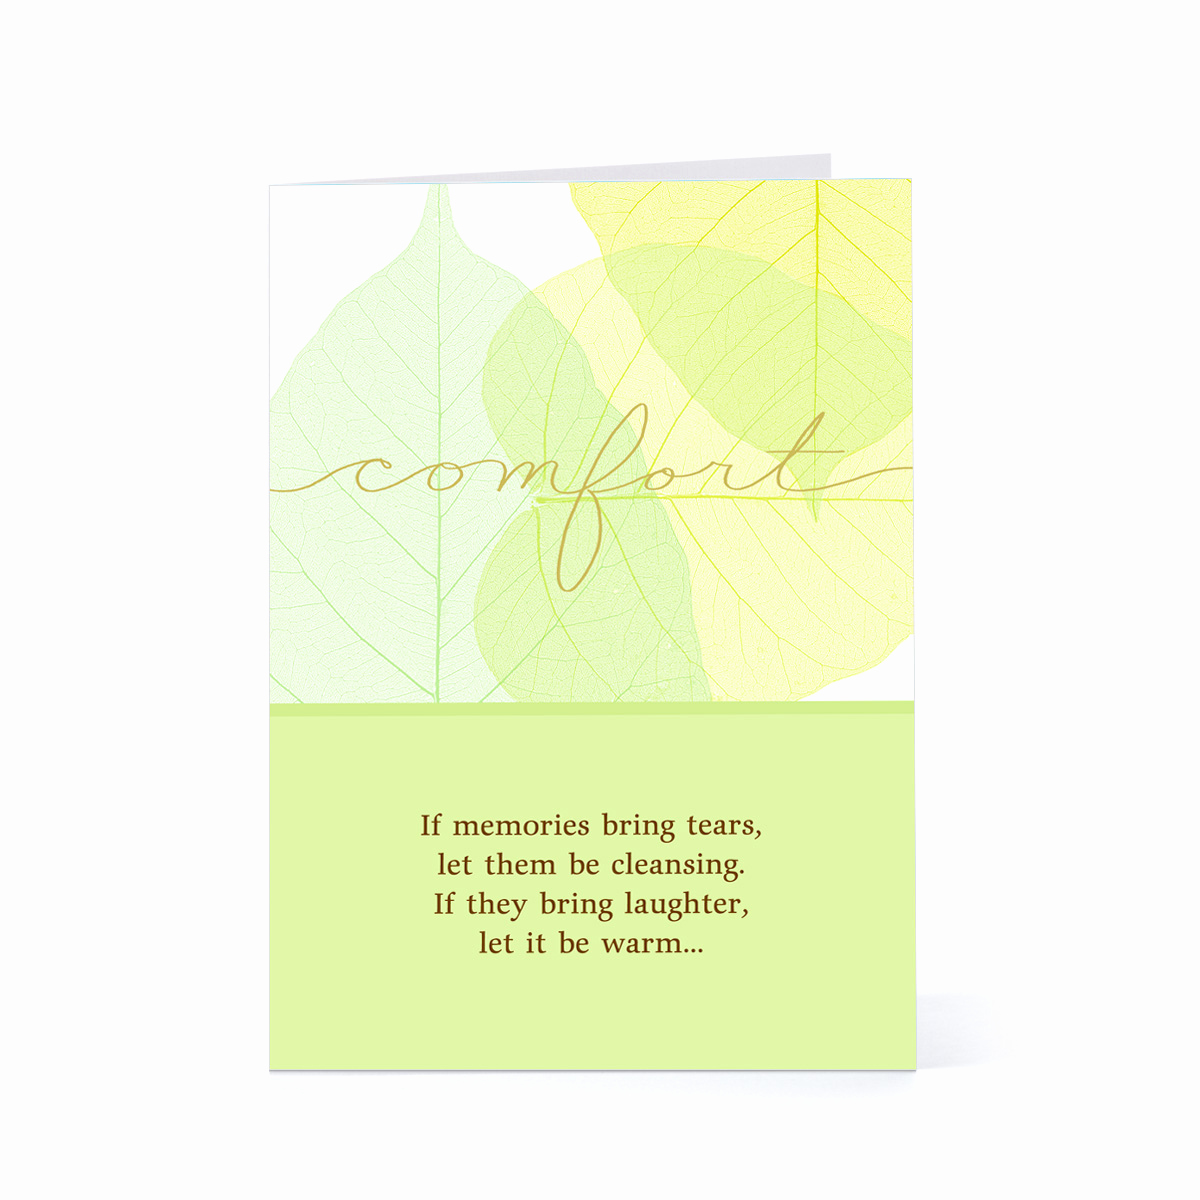 Print Out Sympathy Card Awesome Card Printable Gallery Category Page 42